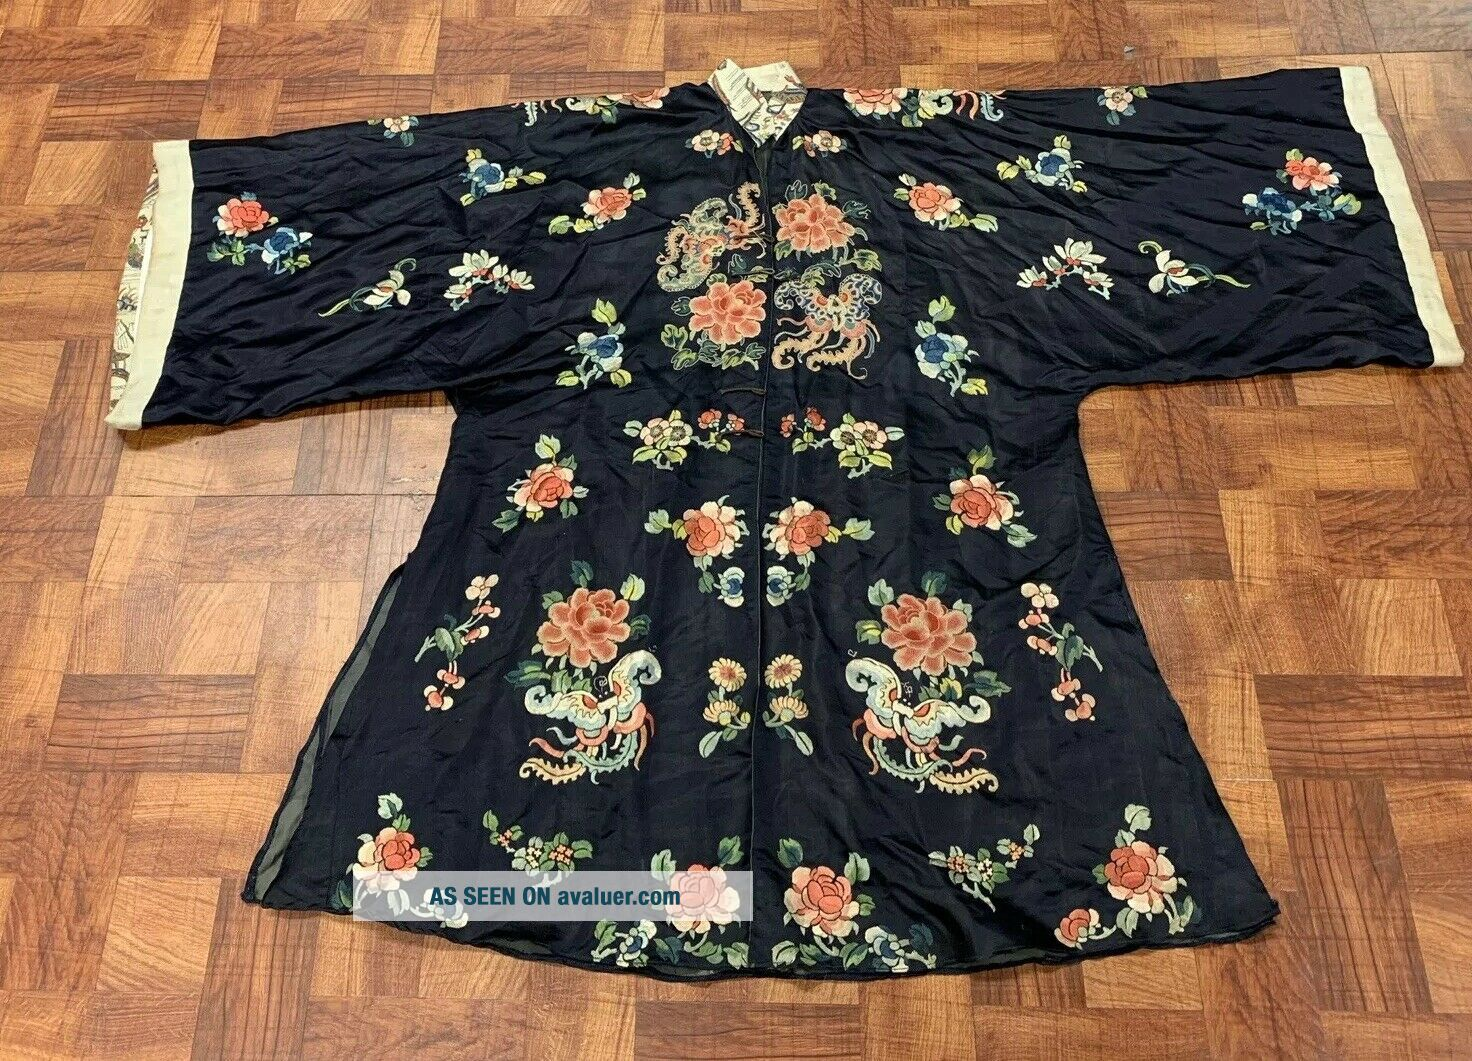 Antique Chinese Qing Dynasty 19th Century Embroidery Silk Robe